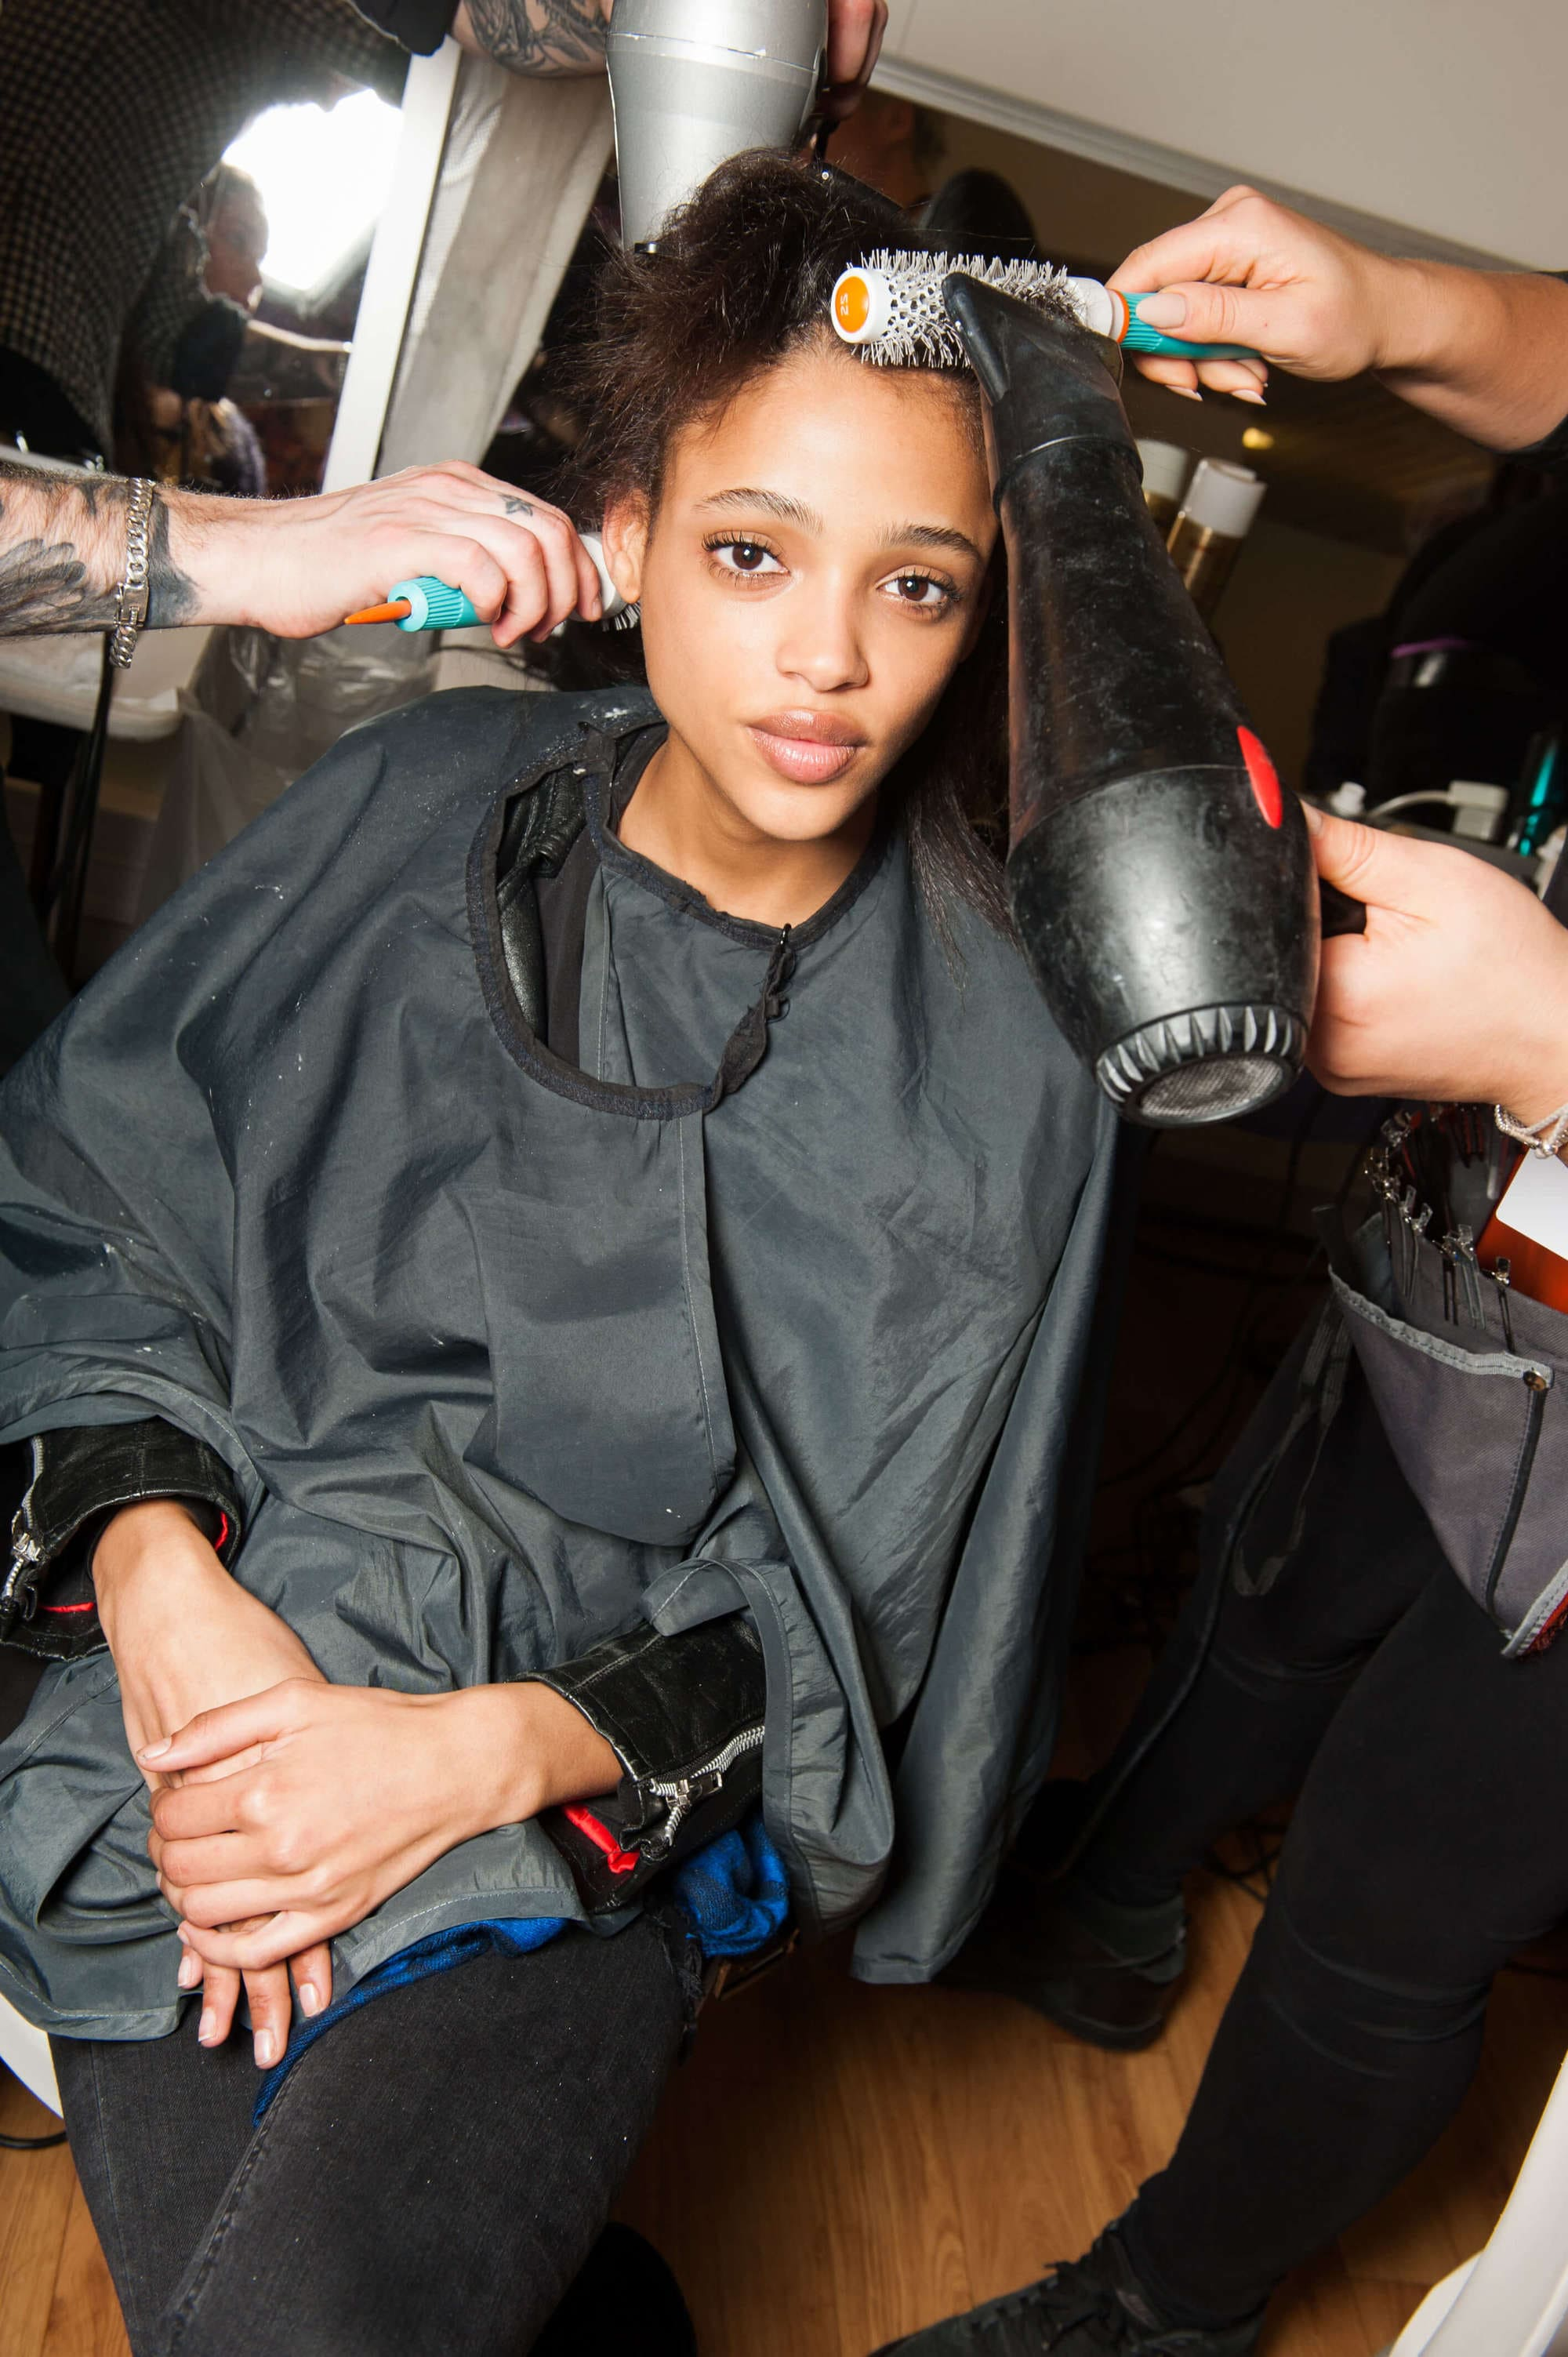 best brush for curly hair: close up shot of model backstage having her curly hair done with a round hair brush